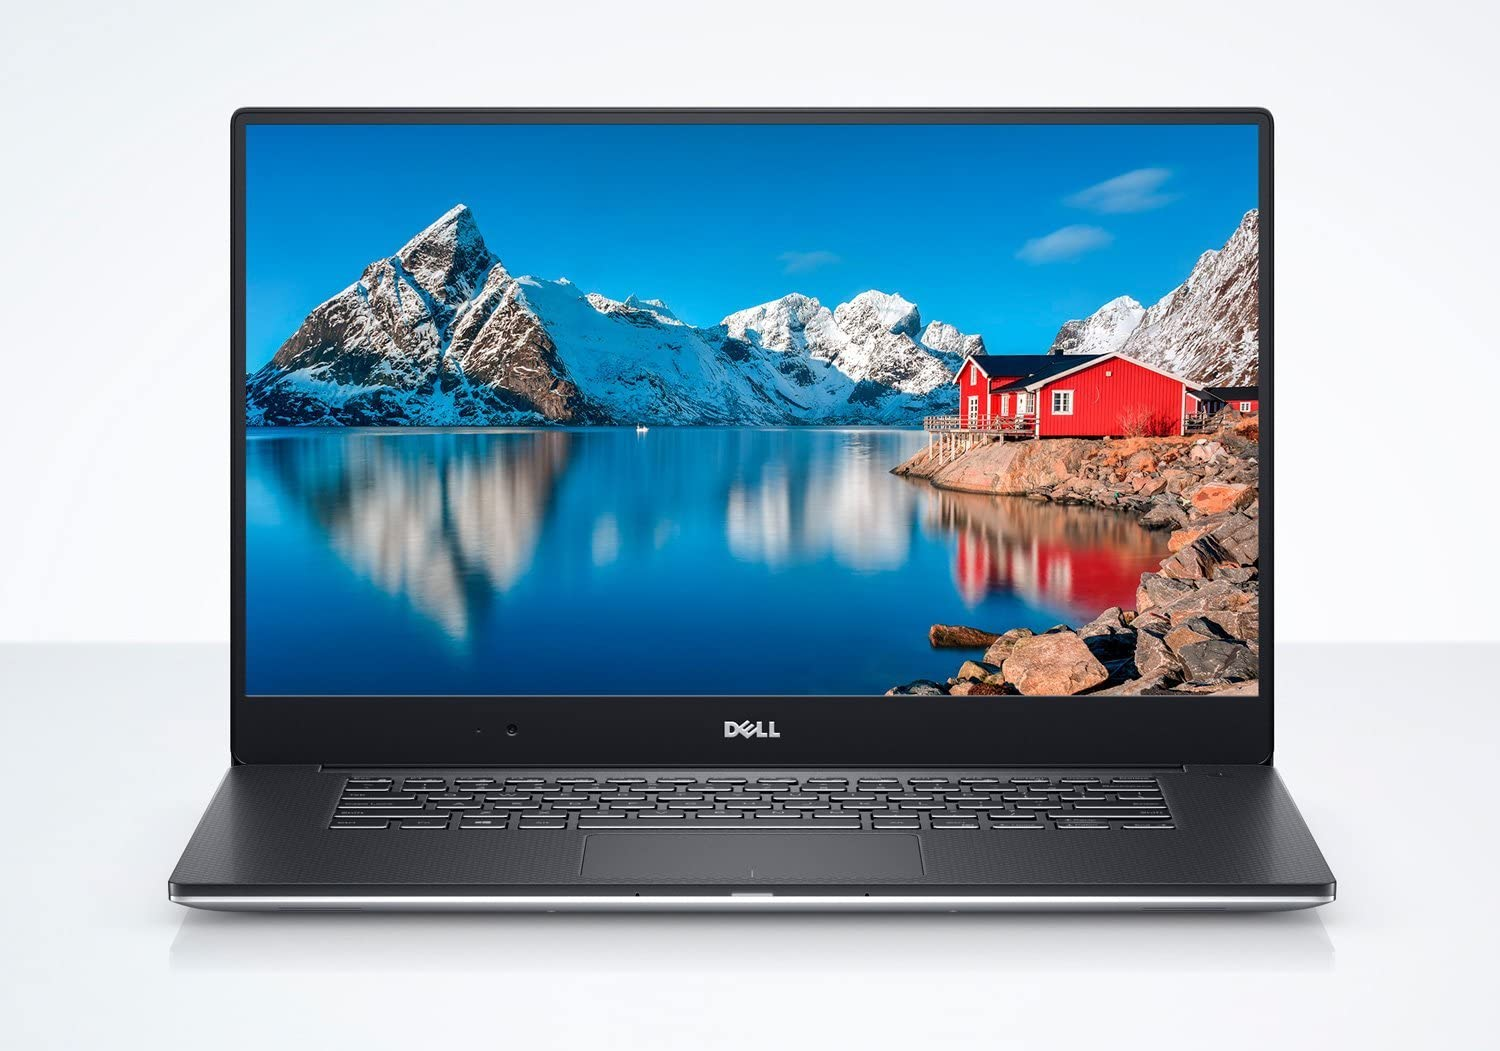 Dell Precision 5510 UHD 15.6 Inch (3840 x 2160) TOUCH Screen Work Station Laptop (Intel Quad Core i7-6820HQ, 16GB Ram, 512GB SSD, Nvidia Quadro M1000M, HDMI, Camera) Win 10 Pro (Renewed)